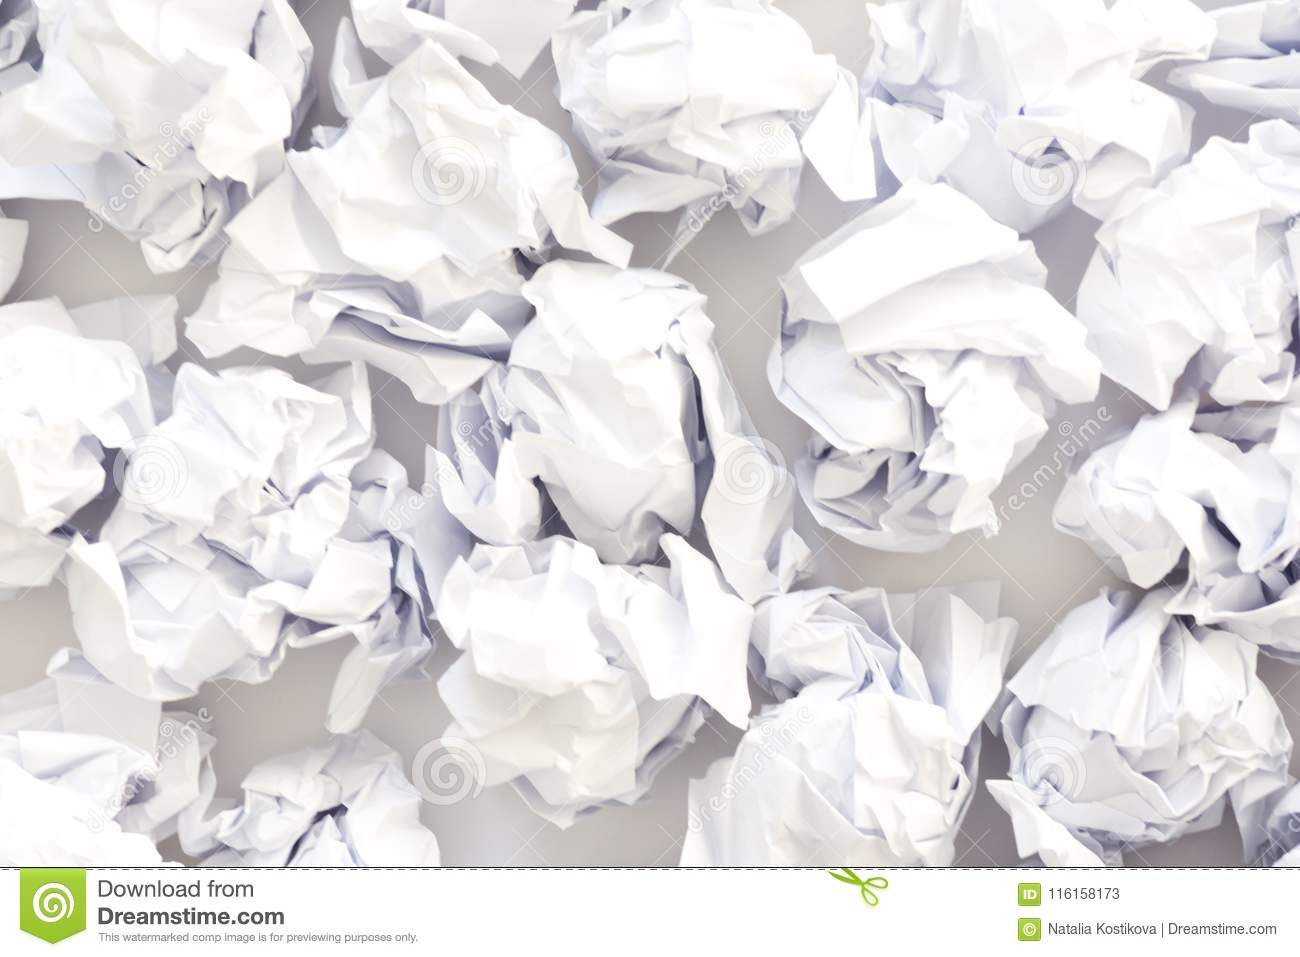 crumpled sheets of white paper ball. a lot of trash paper. white